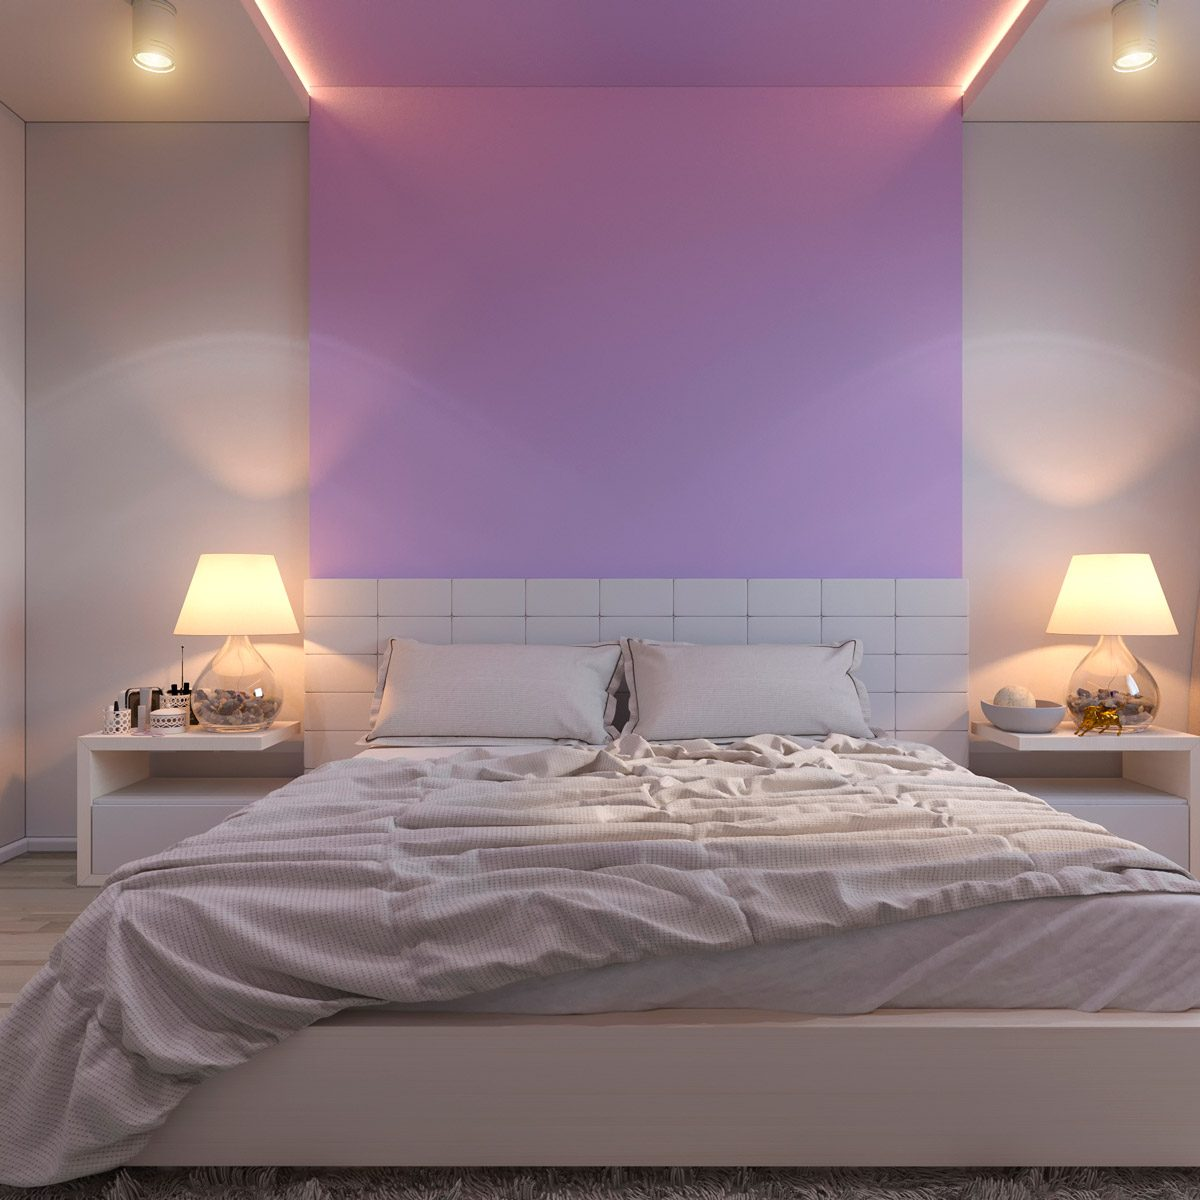 bedroom,wall painting,wayfair wall paintings,buy art online,wayfair wall art,interior house painters,creative wall painting techniques,saatchi art,artwork for walls,prints for sale,wall painting 3d,two toned walls painting ideas,two color wall painting ideas,creative wall painting techniques,cool paint techniques for walls,interior wall painting ideas,living room wall painting ideas,home interior painting ideas pictures,different ways to paint walls,wall painting ideas,wall painting art,wall painting mr brainwash,18 genius ideas to decorate boring walls,15 different wall painting ideas,4 wall painting ideas for easy method,wall art